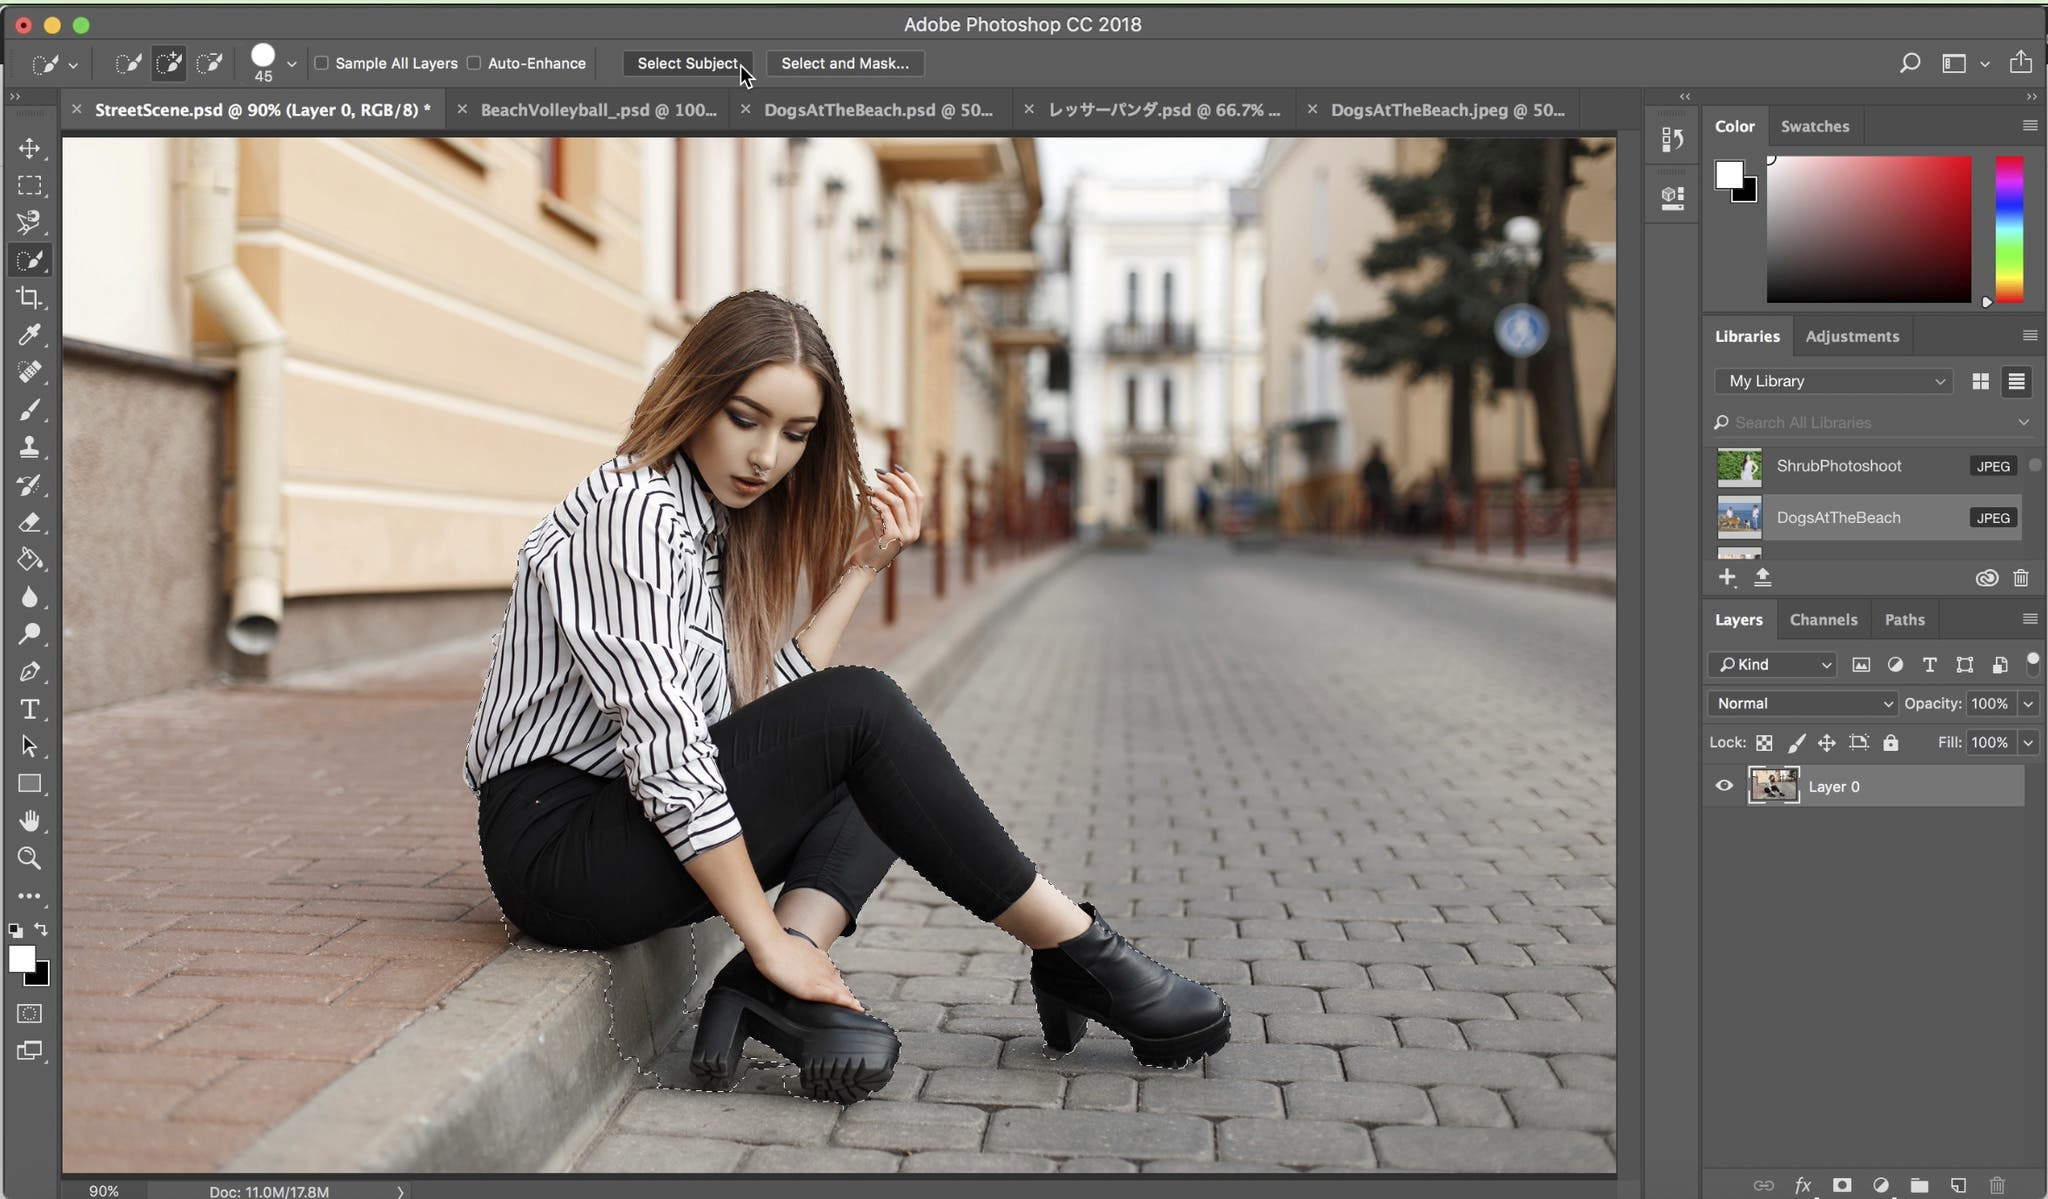 Adobe Looks To Make Your Selections as Easy as One-Click In Latest Photoshop CC Update